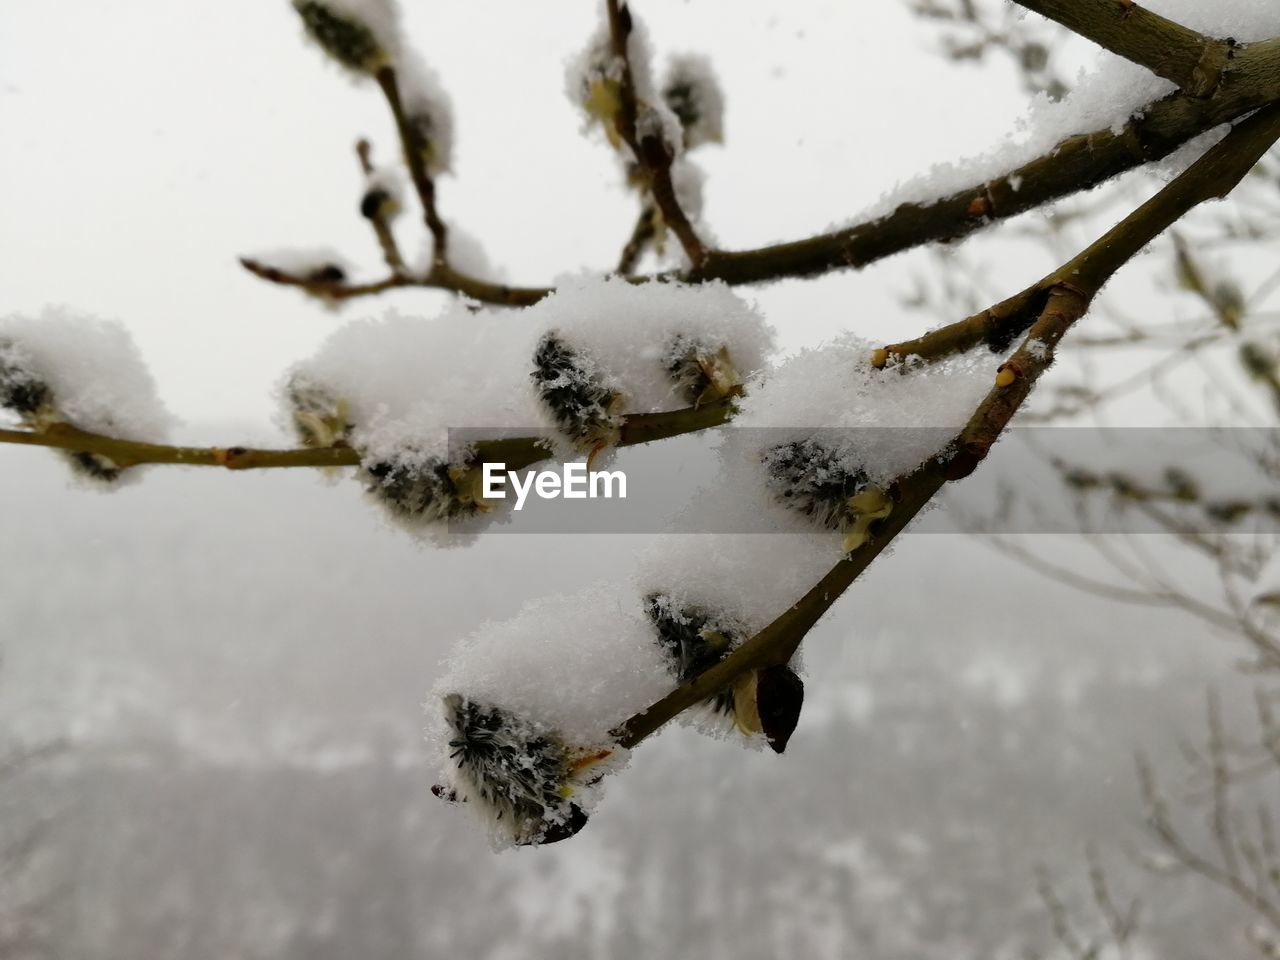 winter, snow, cold temperature, weather, nature, frozen, white color, close-up, day, outdoors, beauty in nature, tree, no people, focus on foreground, frost, branch, sky